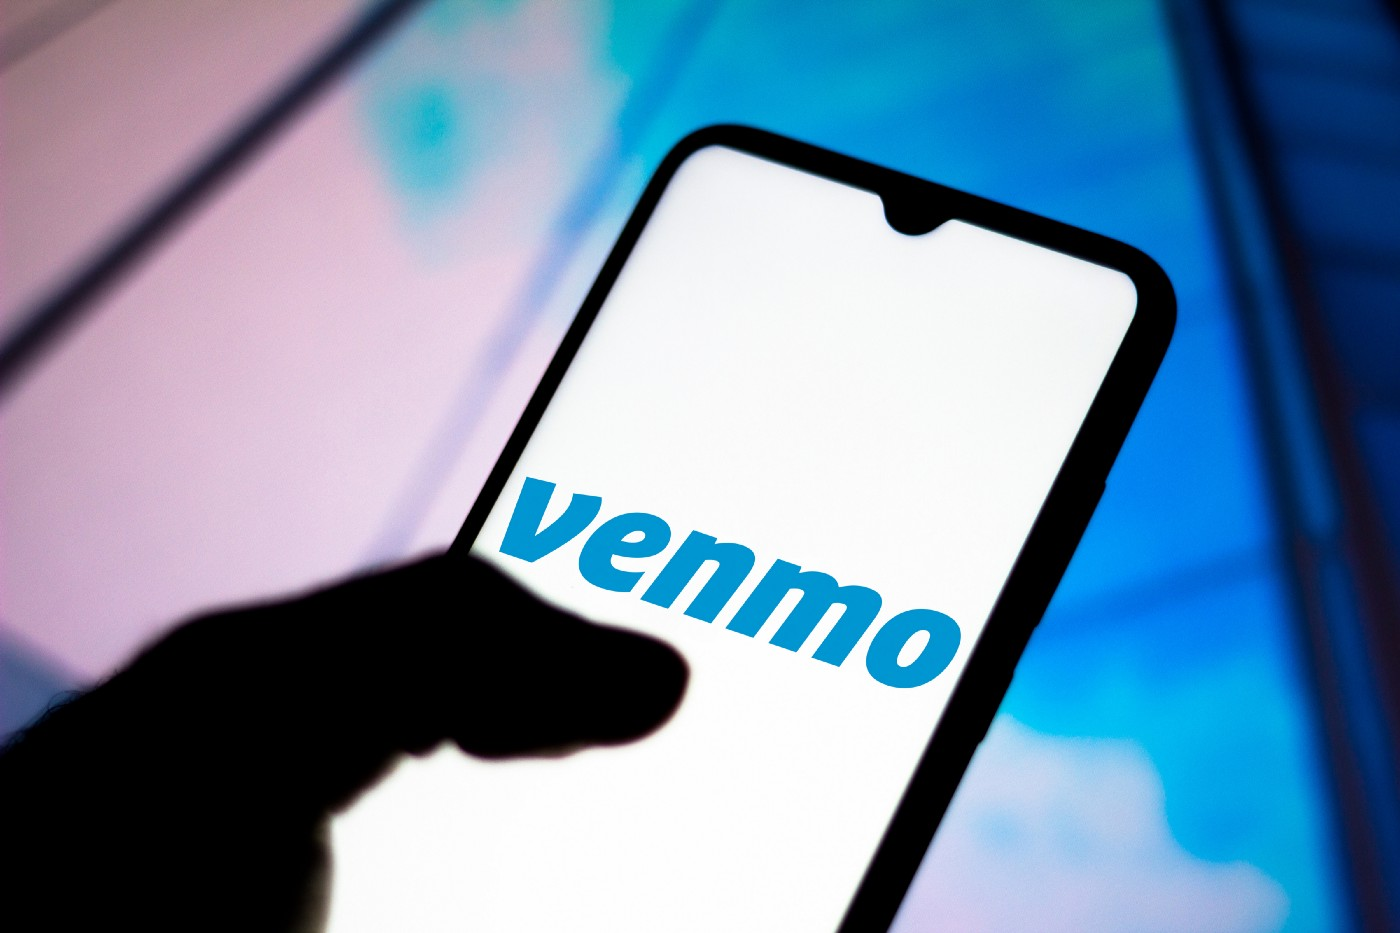 Venmo logo displayed on a smartphone.